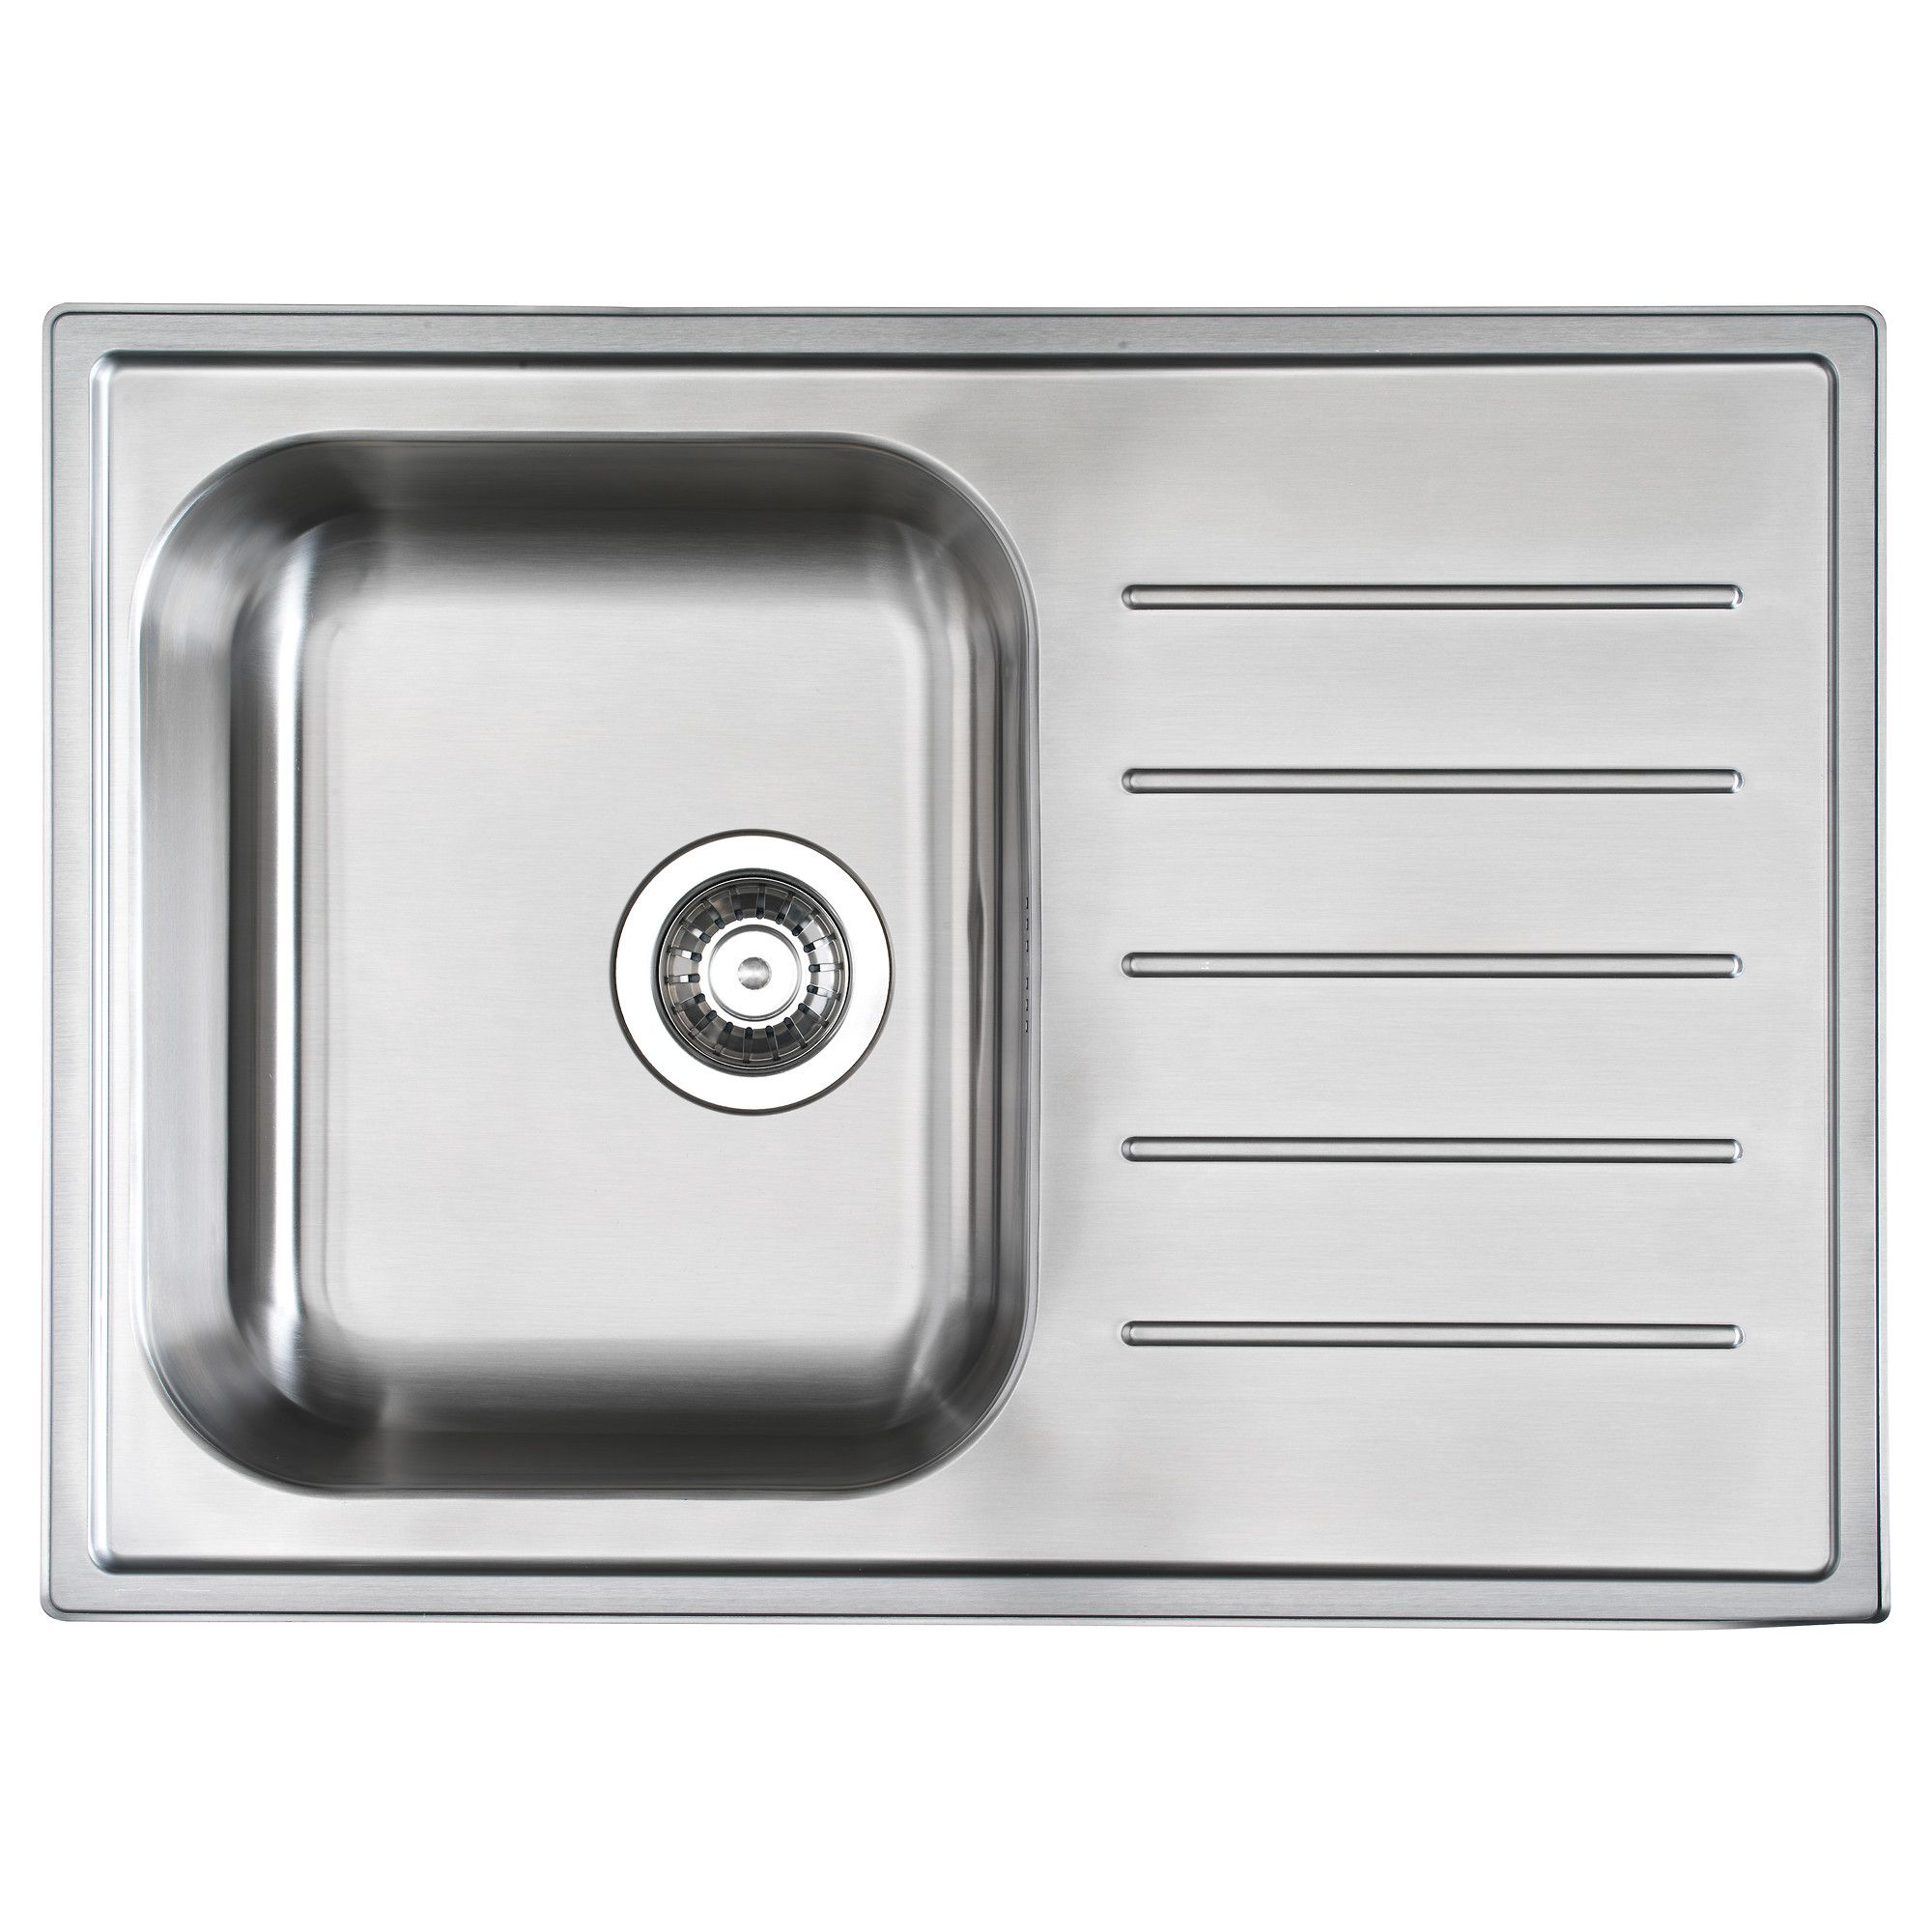 Ikea Spülbecken Für Küche Boholmen 1 Bowl Inset Sink With Drainer Ikea Cottage Pinterest